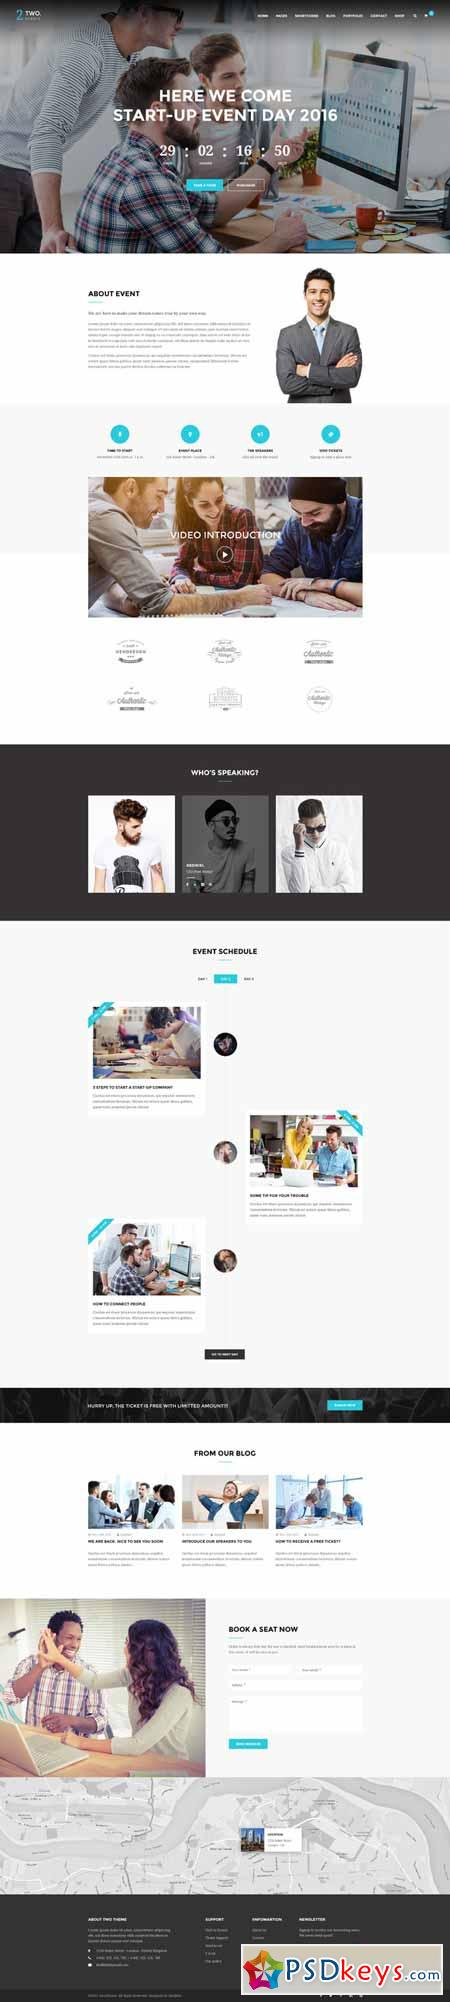 Two - Multipurpose PSD Template 586405